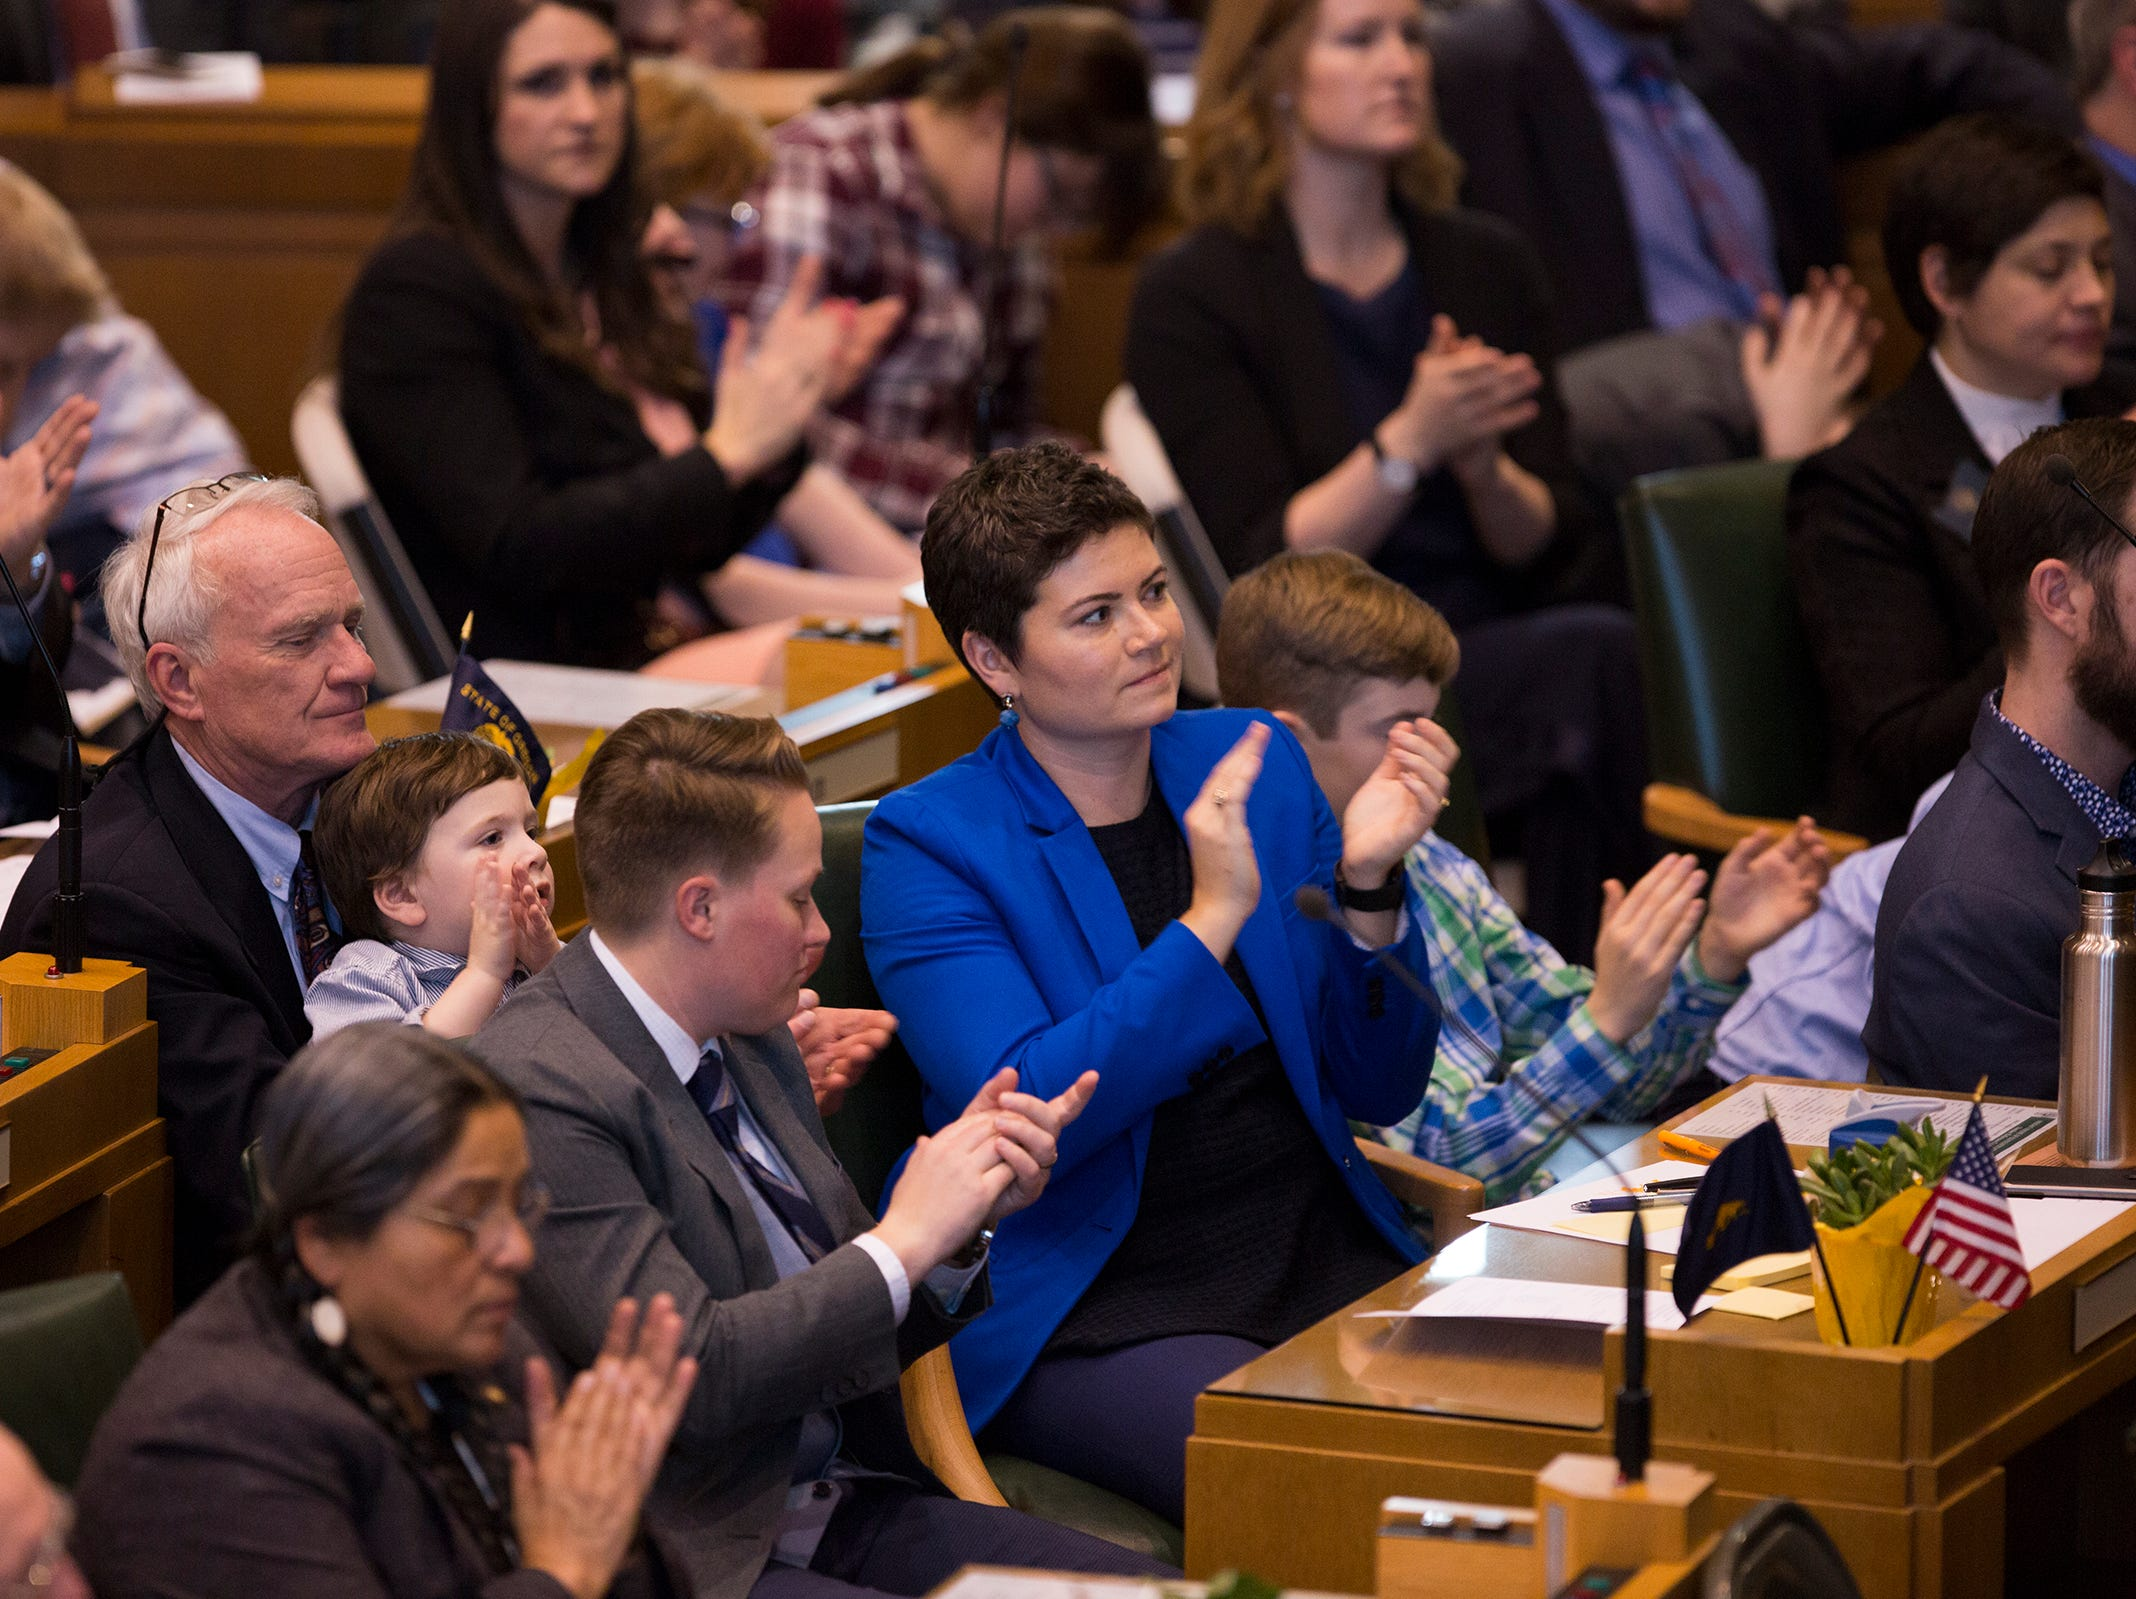 Oregon state officials listen to Governor Kate Brown address the state legislature at her inauguration at the Oregon State Capitol on Jan. 14, 2019.